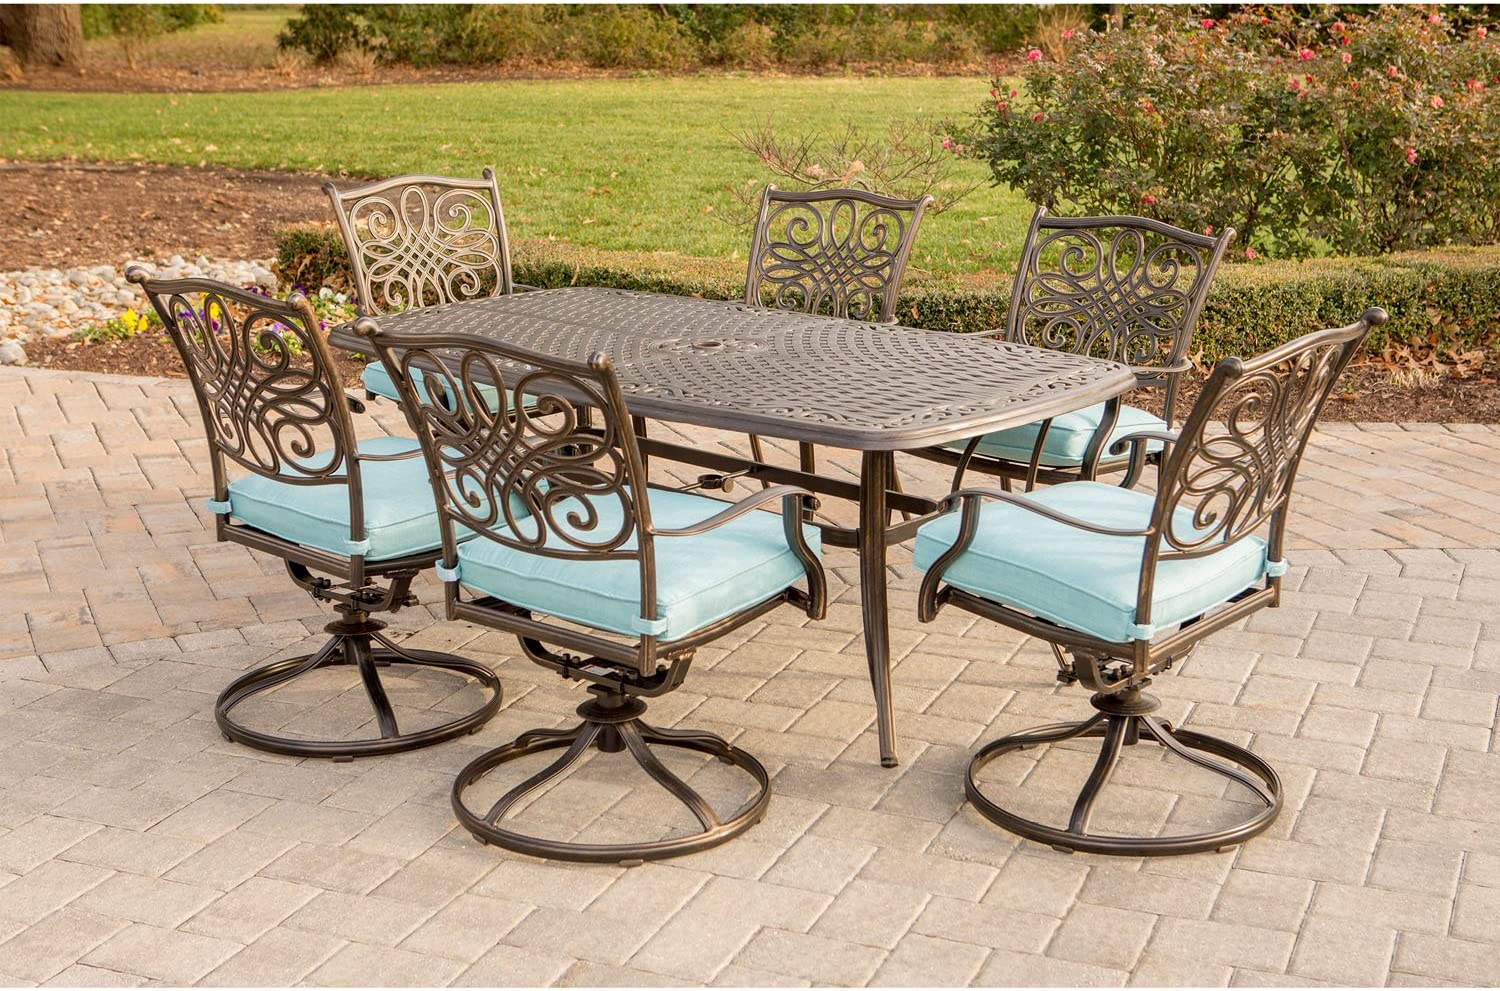 Hanover Traditions 7-Piece Metal Dining Set with 6 Swivel Chairs and a Large 72 x 38″ Dining Table